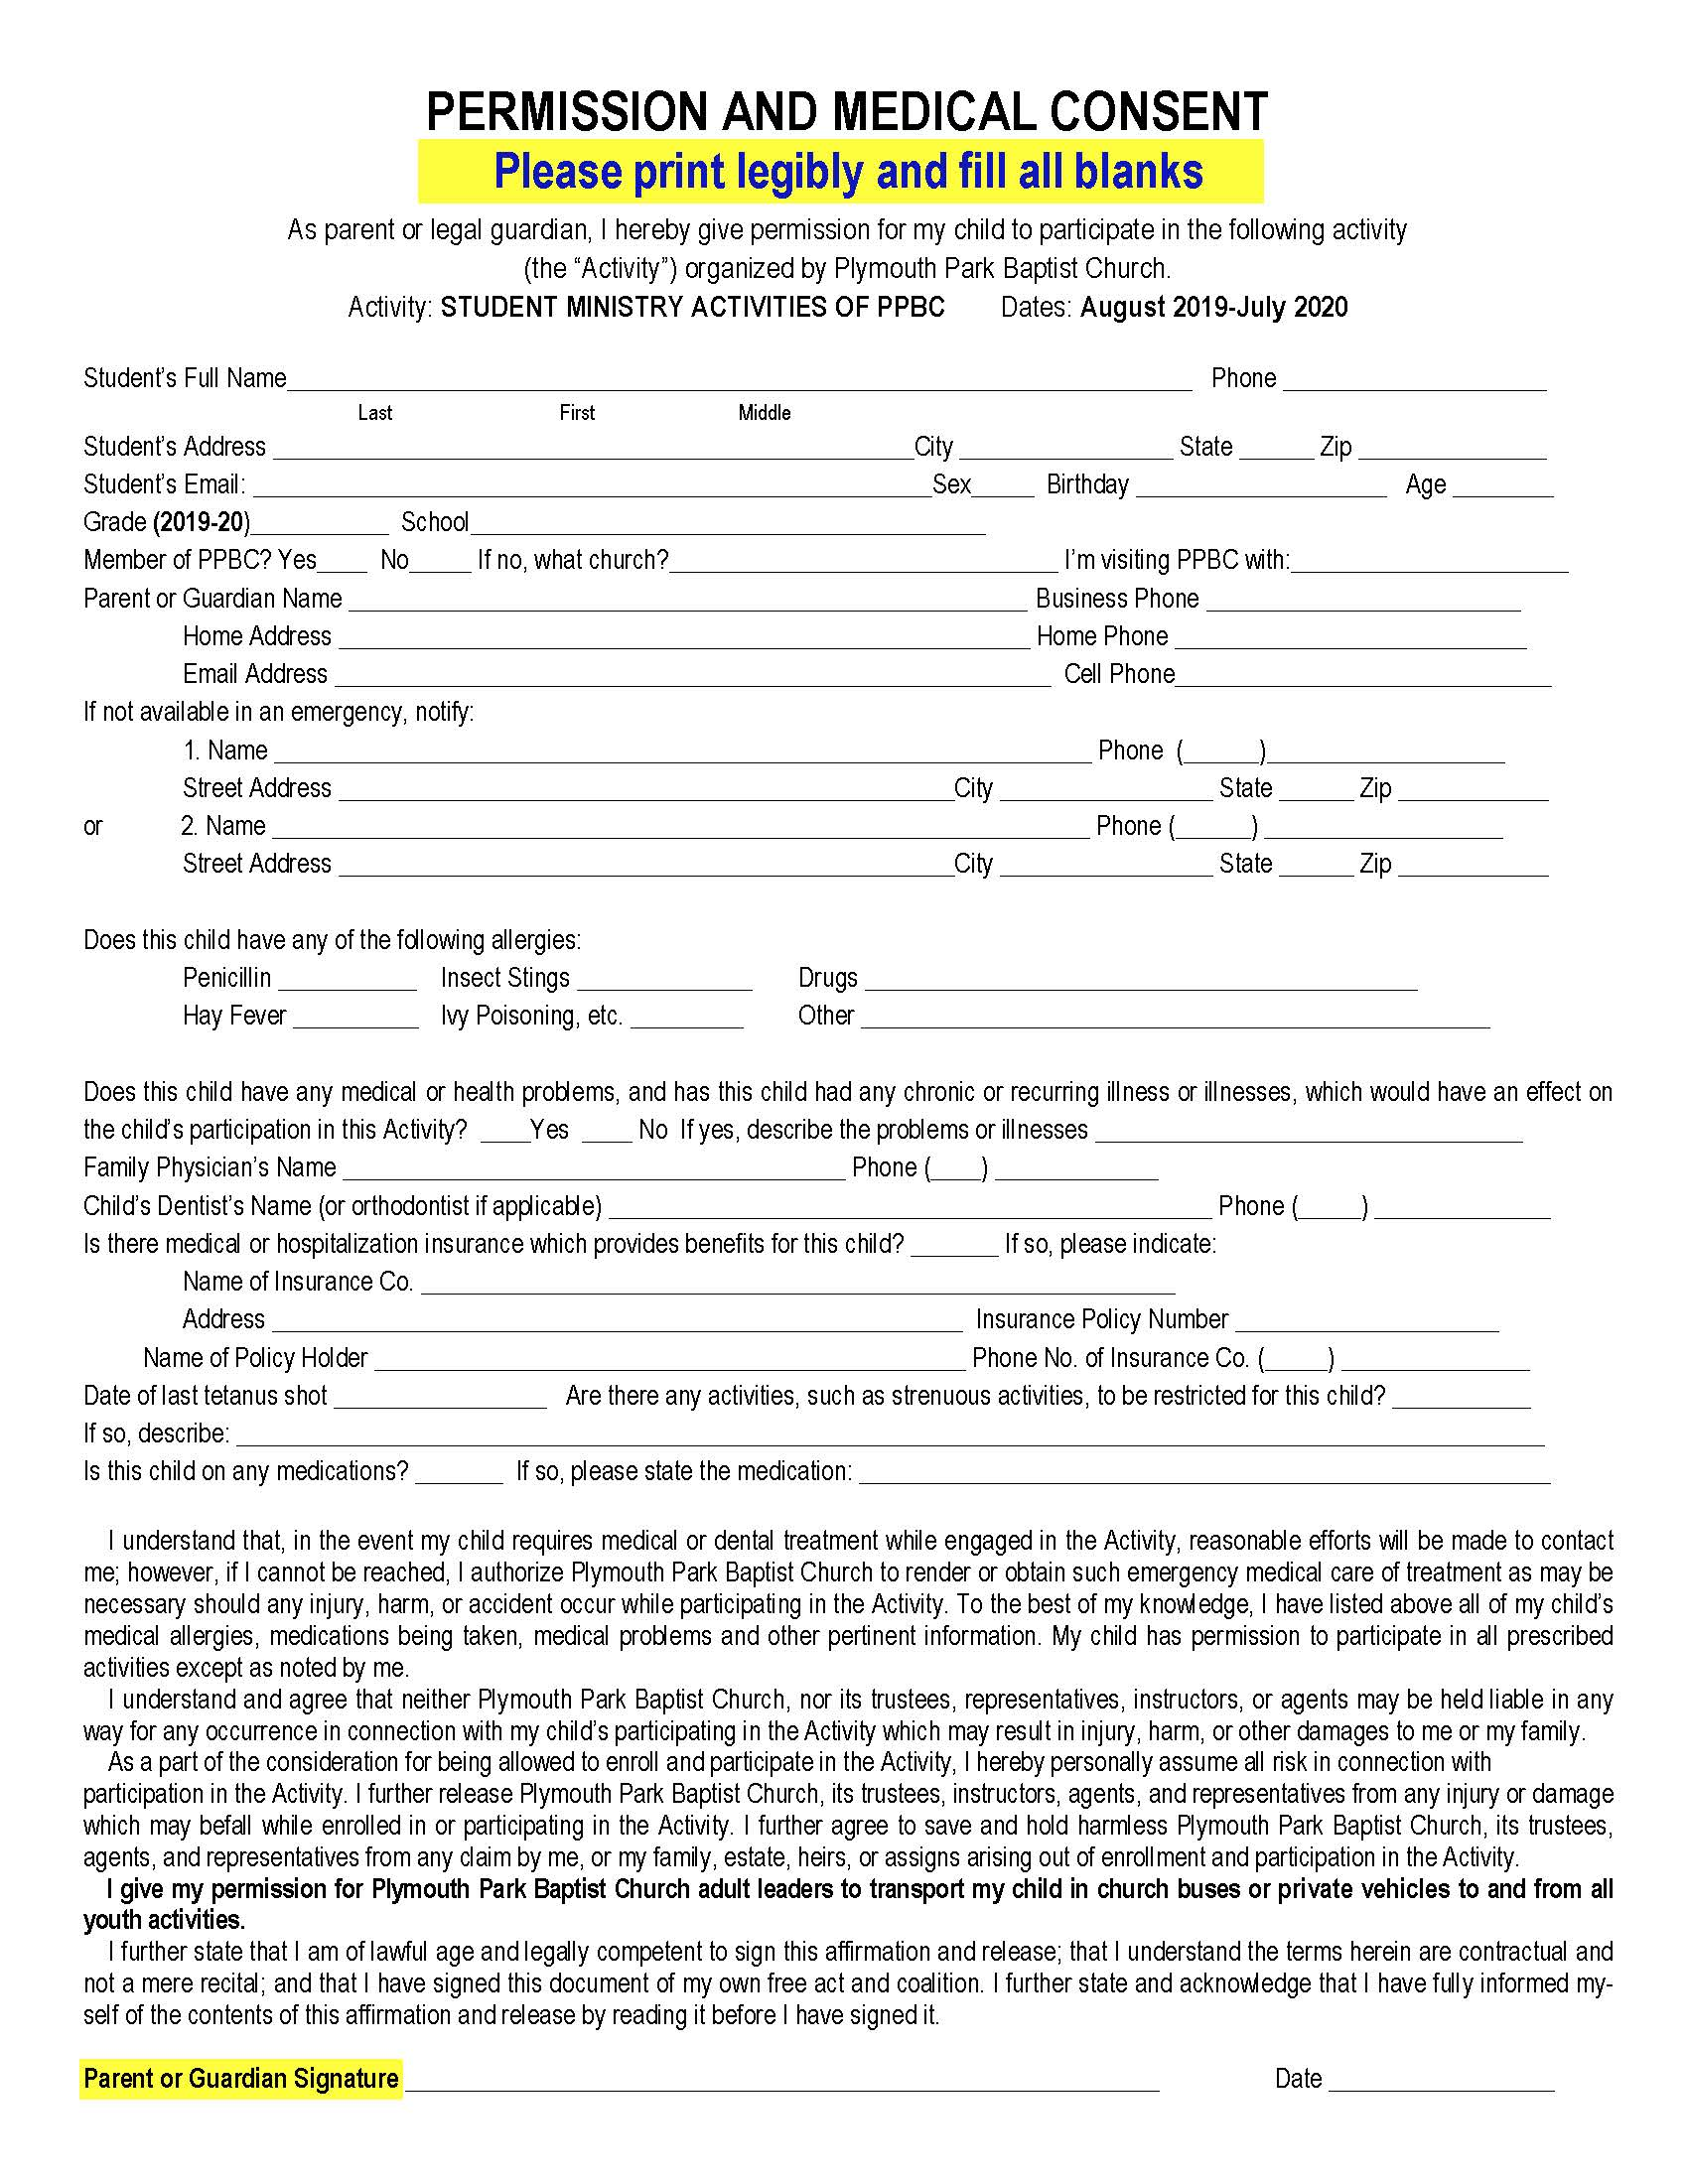 2019-20 Medical Release Form Bilingual_Page_1